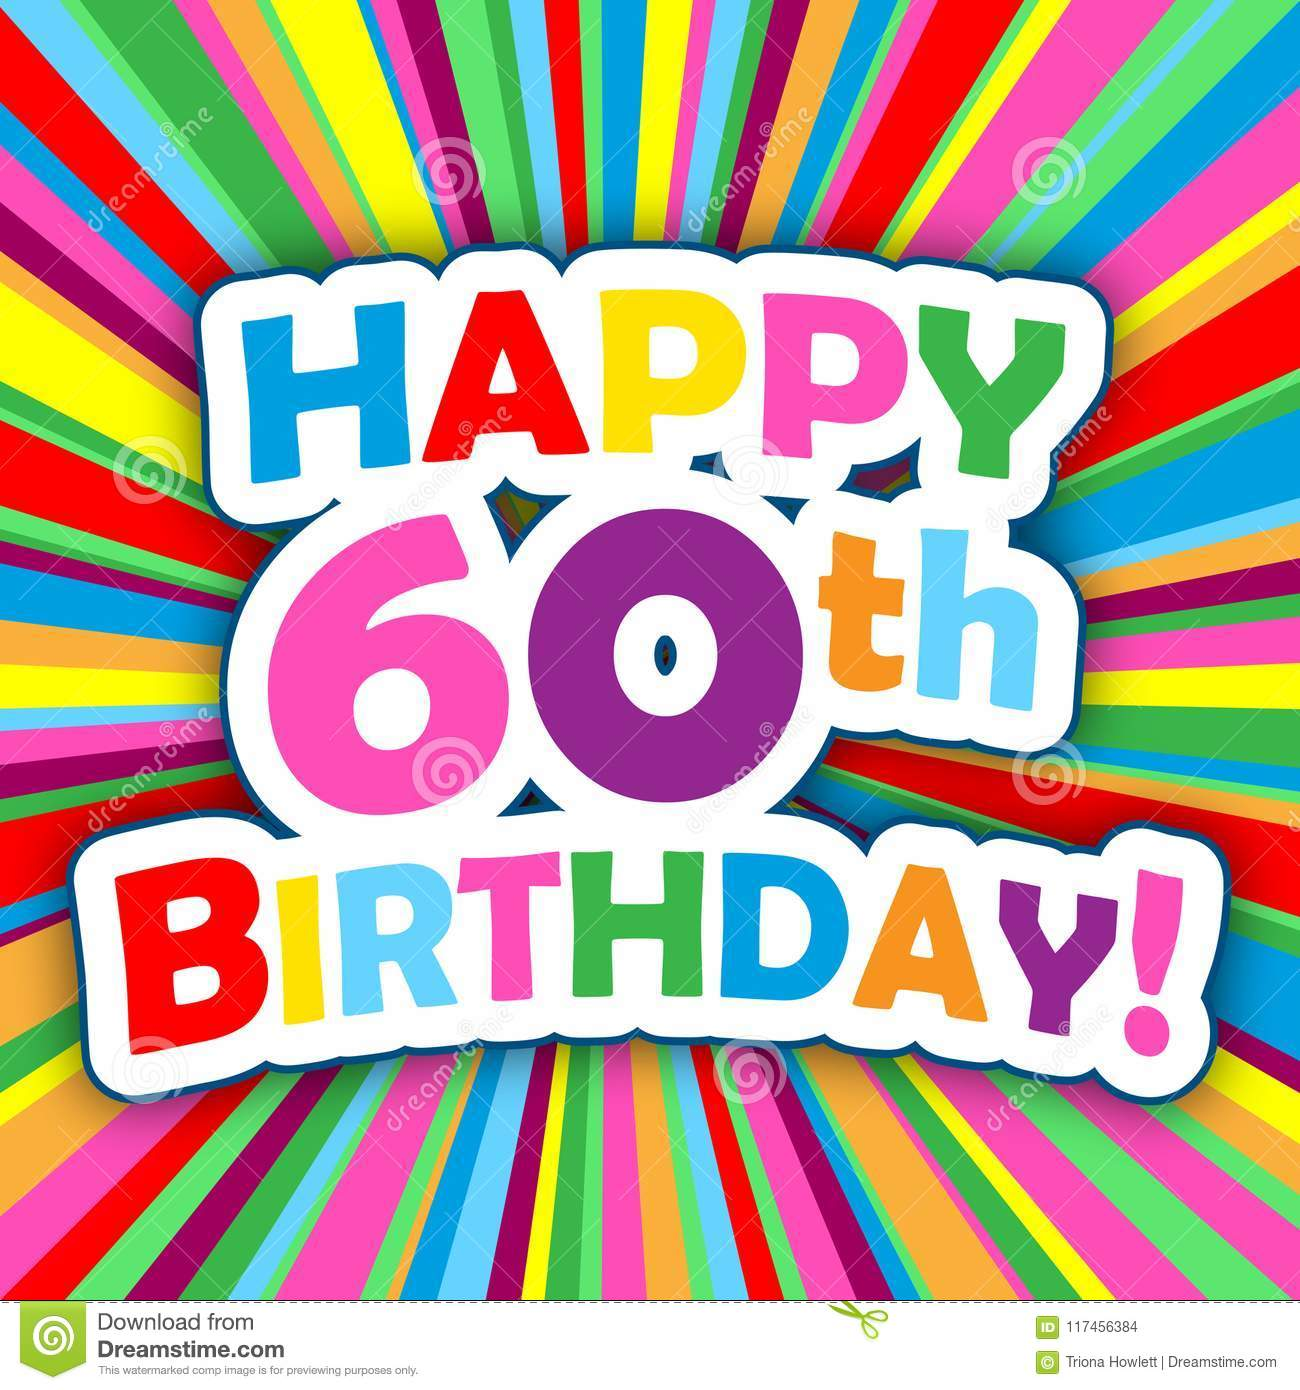 HAPPY 60th BIRTHDAY! Card On Colorful Vector Background Stock